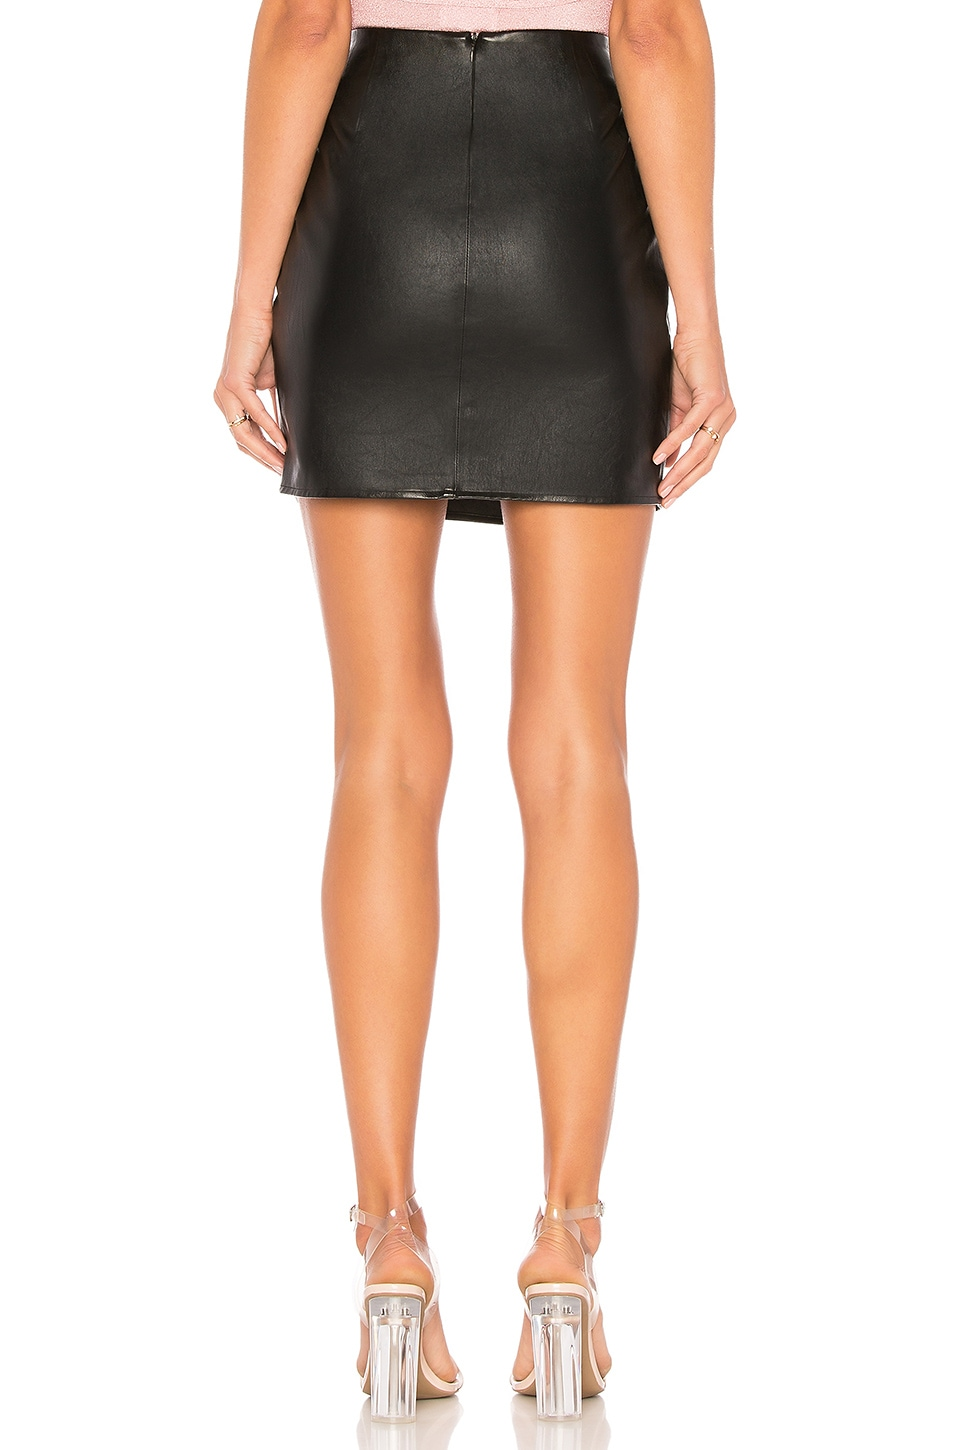 Trinity Faux Leather Skirt, view 3, click to view large image.